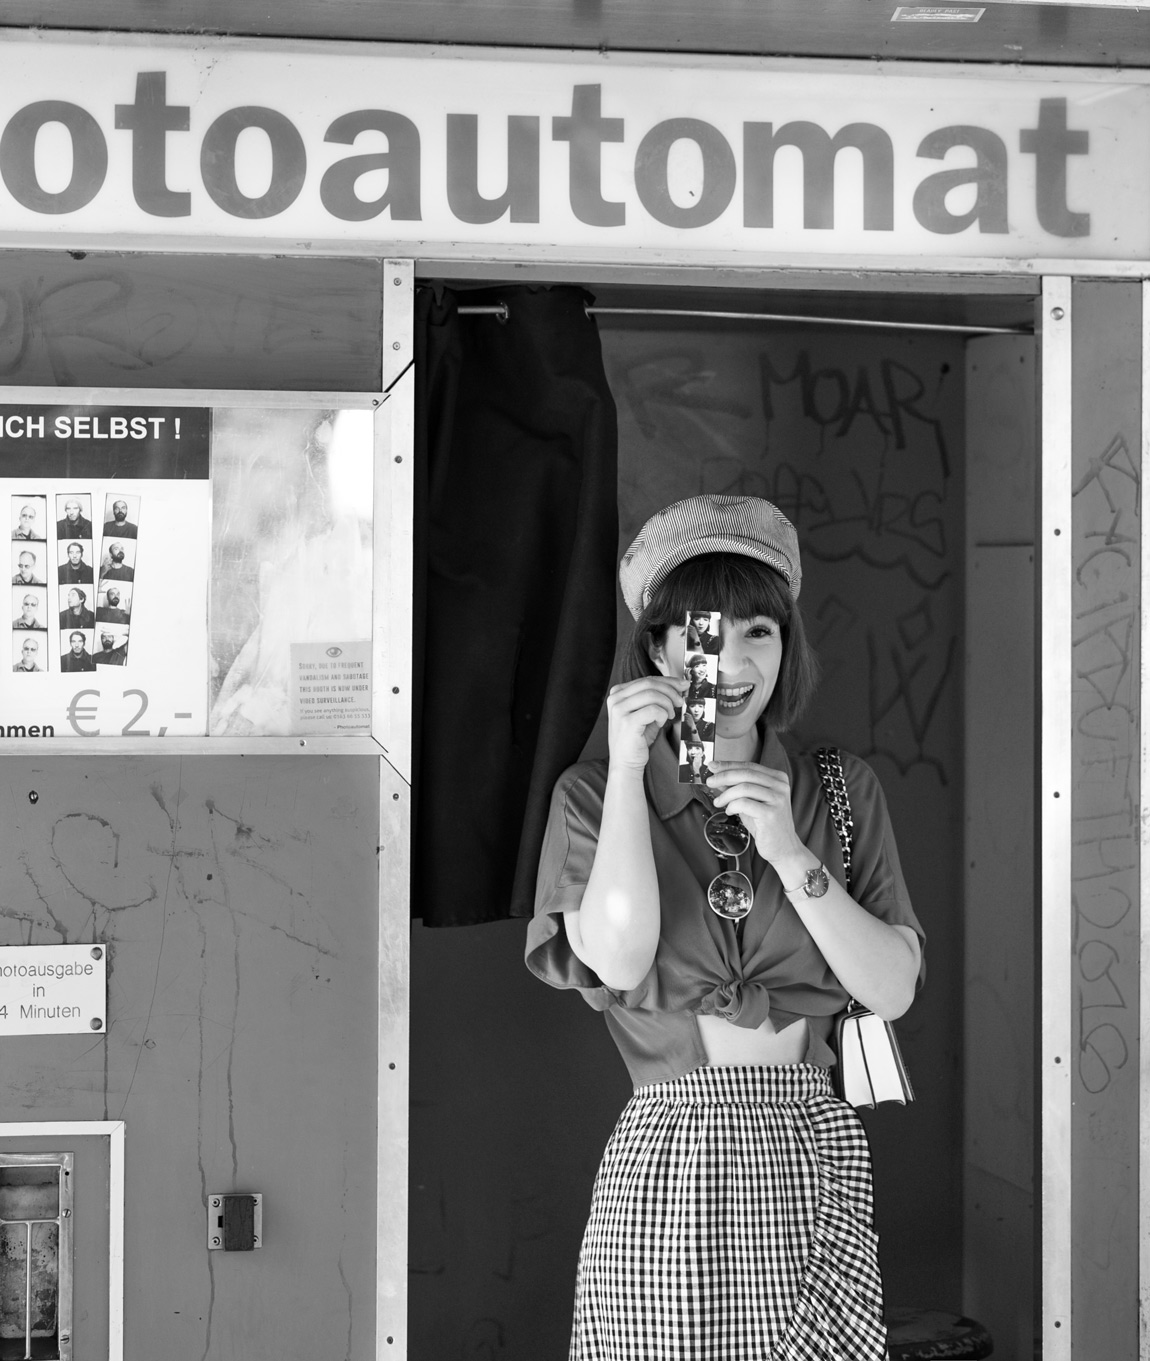 karo, photoautomat, berlin, fashionblog, modeblogger, herbst, inspiration, ootd, outfit, rock, midi